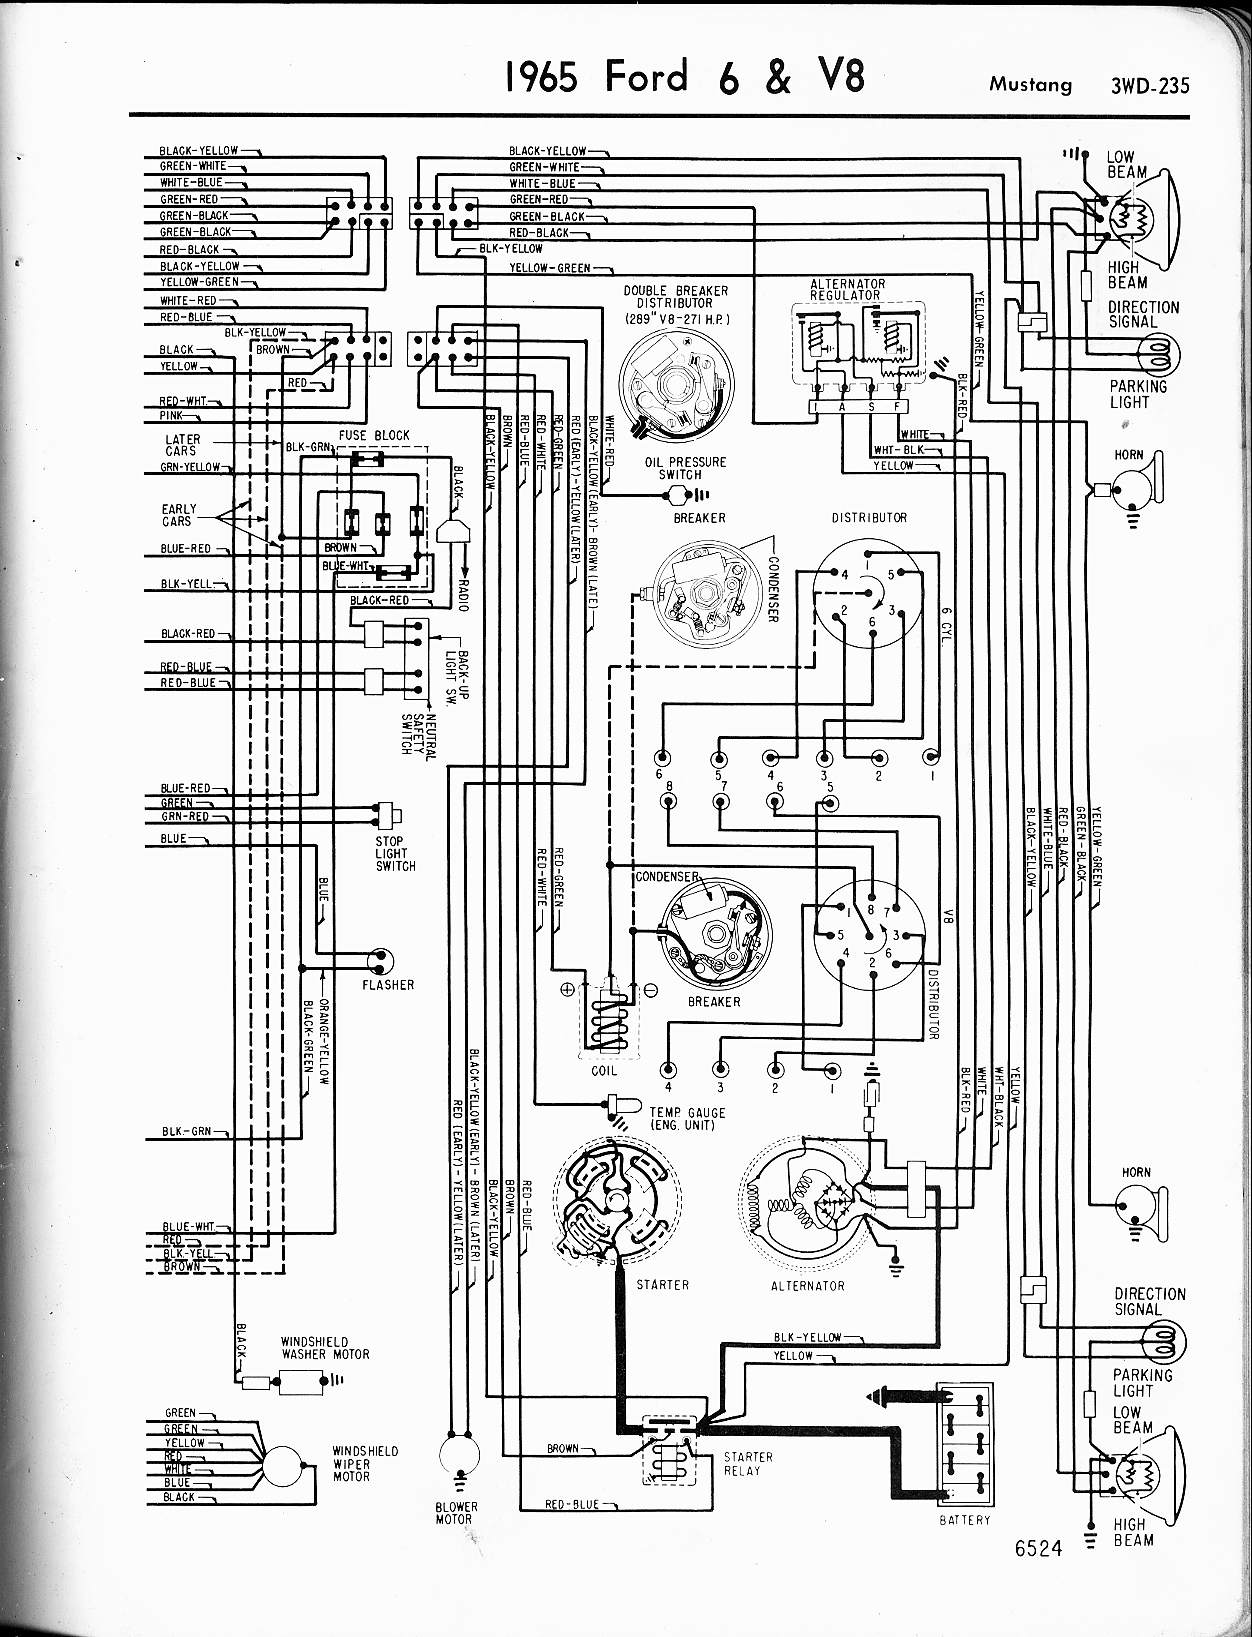 MWire5765 235 57 65 ford wiring diagrams 1969 mustang steering column wiring diagram at cos-gaming.co